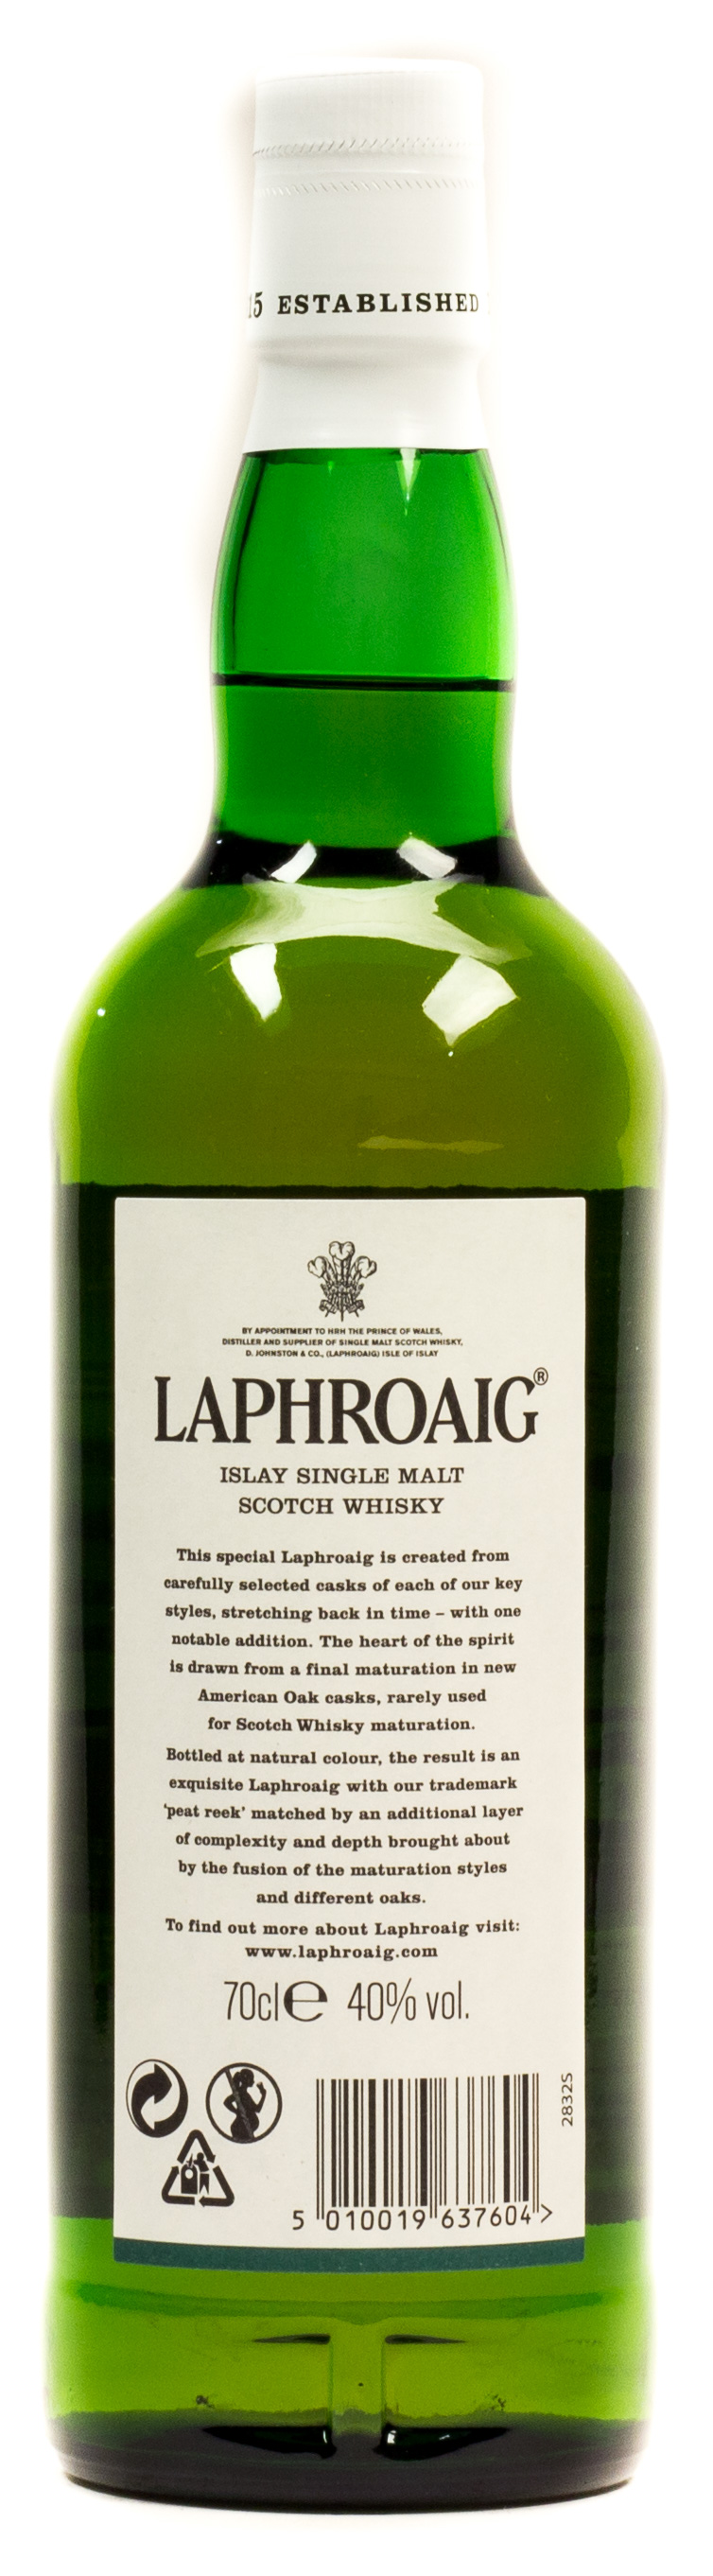 Laphroaig Islay Single Malt Scotch Whisky Select 0,7 l